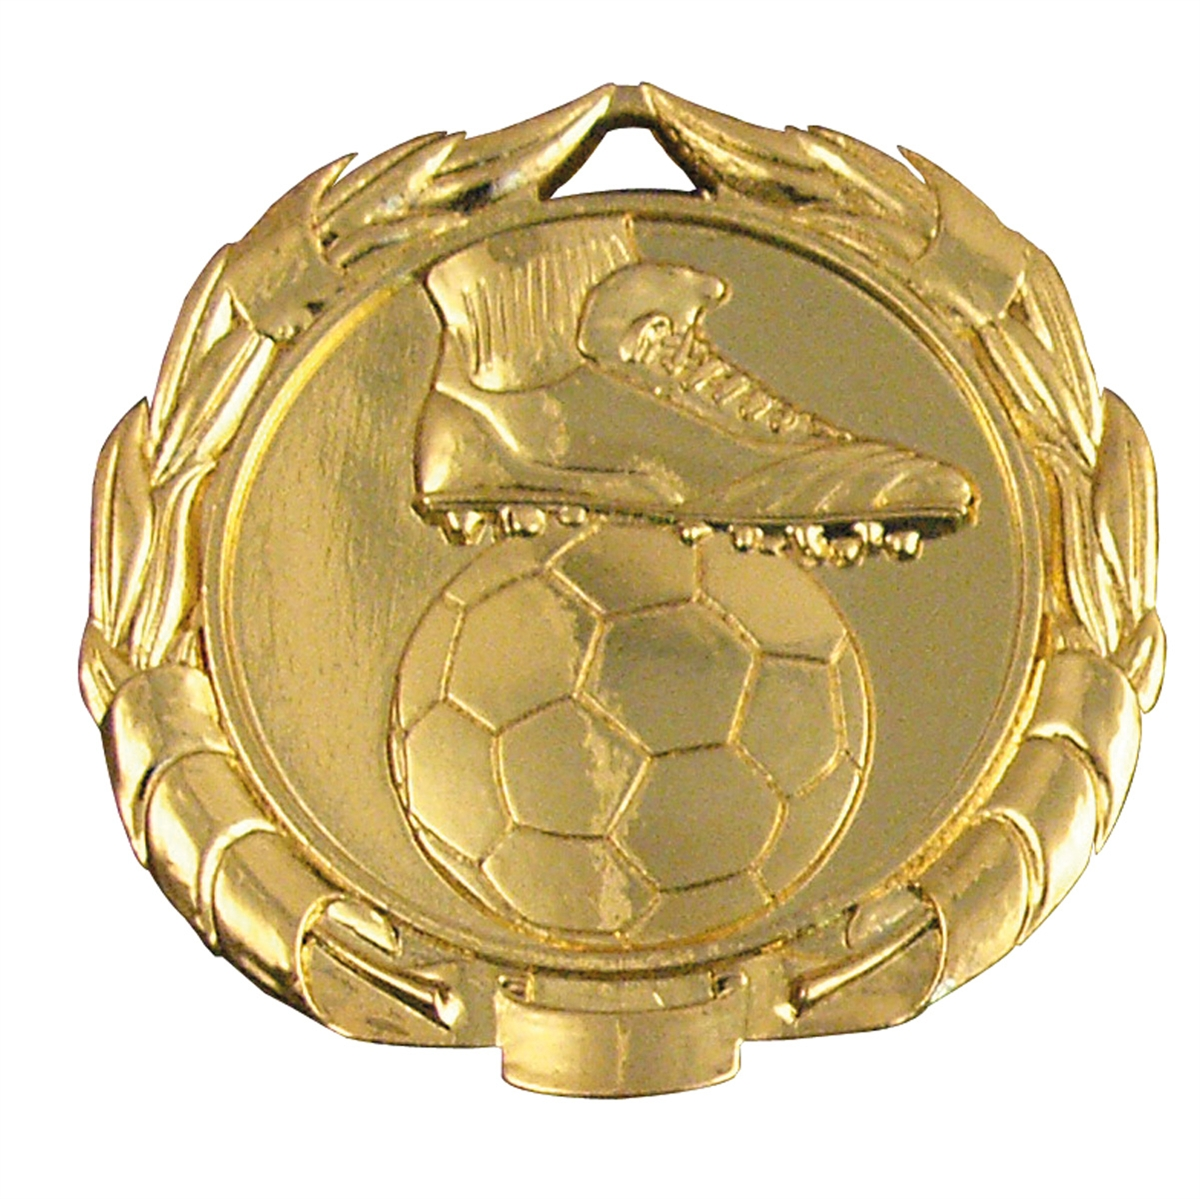 Beautiful Boot & Football in Wreath 45mm Medal 63801 ...